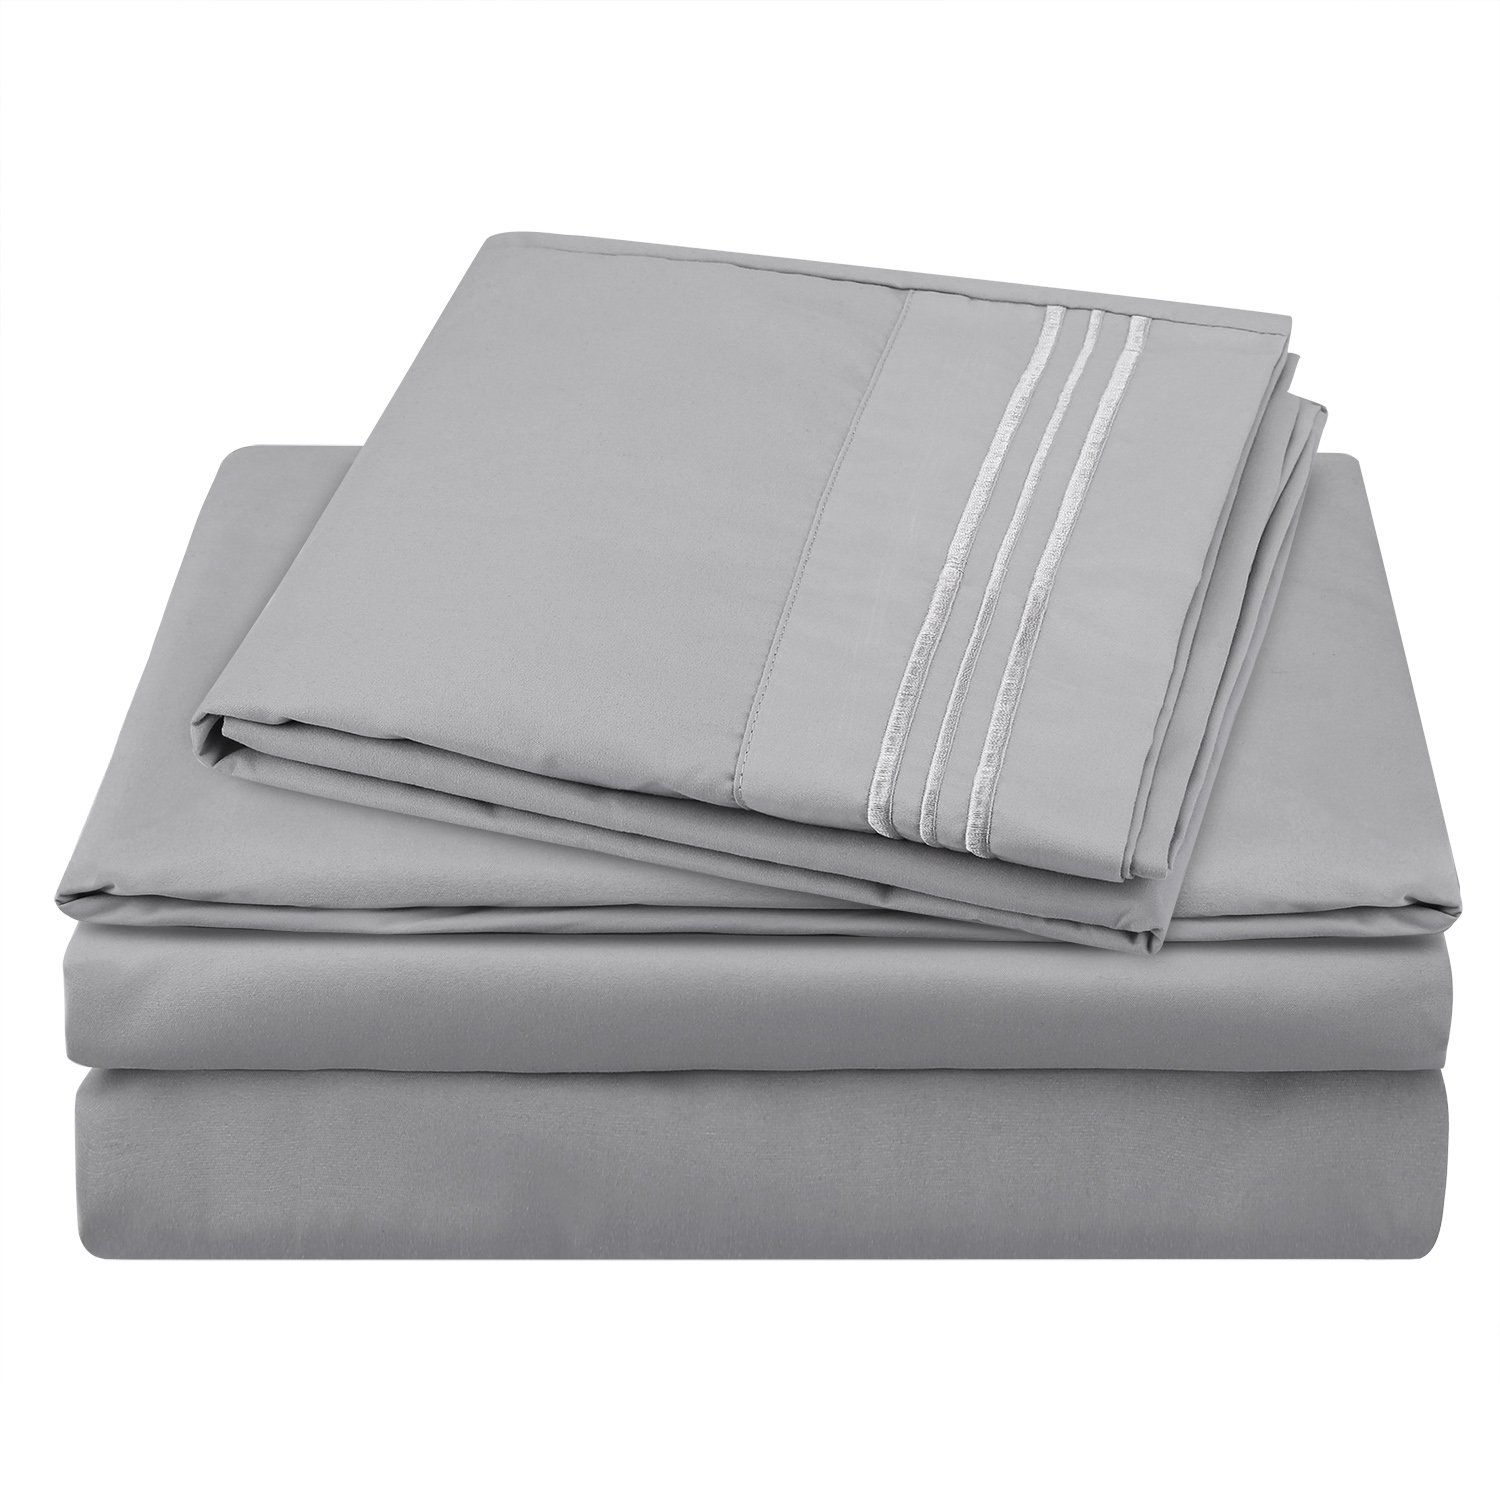 HOMEIDEAS 105 GSM Hotel Luxury 3 Piece Bed Sheets Set (Twin XL,Light Gray) Hypoallergenic Microfiber 1800 Series Bedding Sheets - Deep Pockets,Wrinkle & Fade Resistant